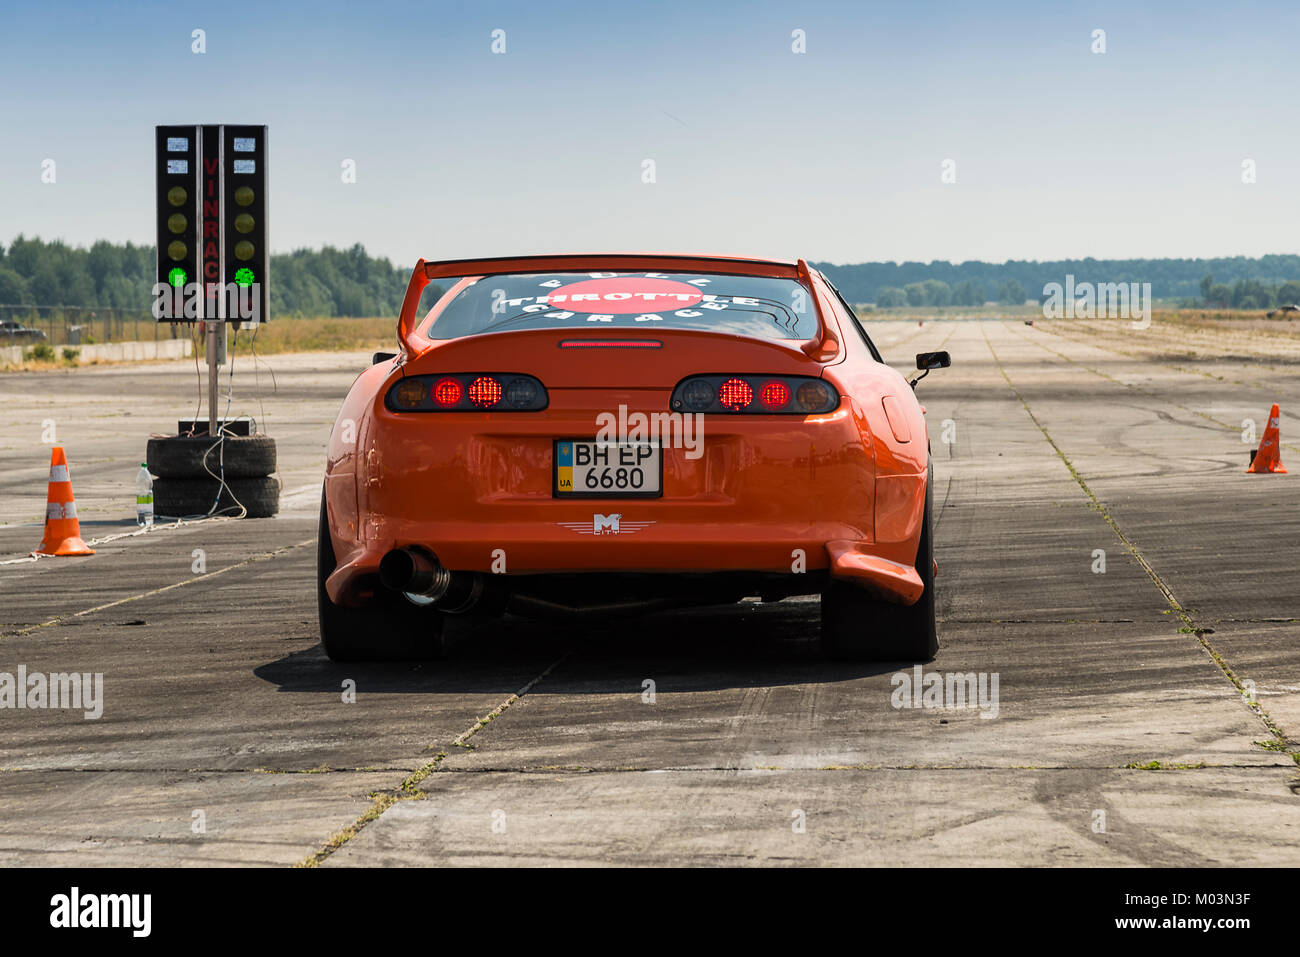 Vinnytsia,Ukraine-July 26, 2015: Drag racing car brand Toyota Supra ...